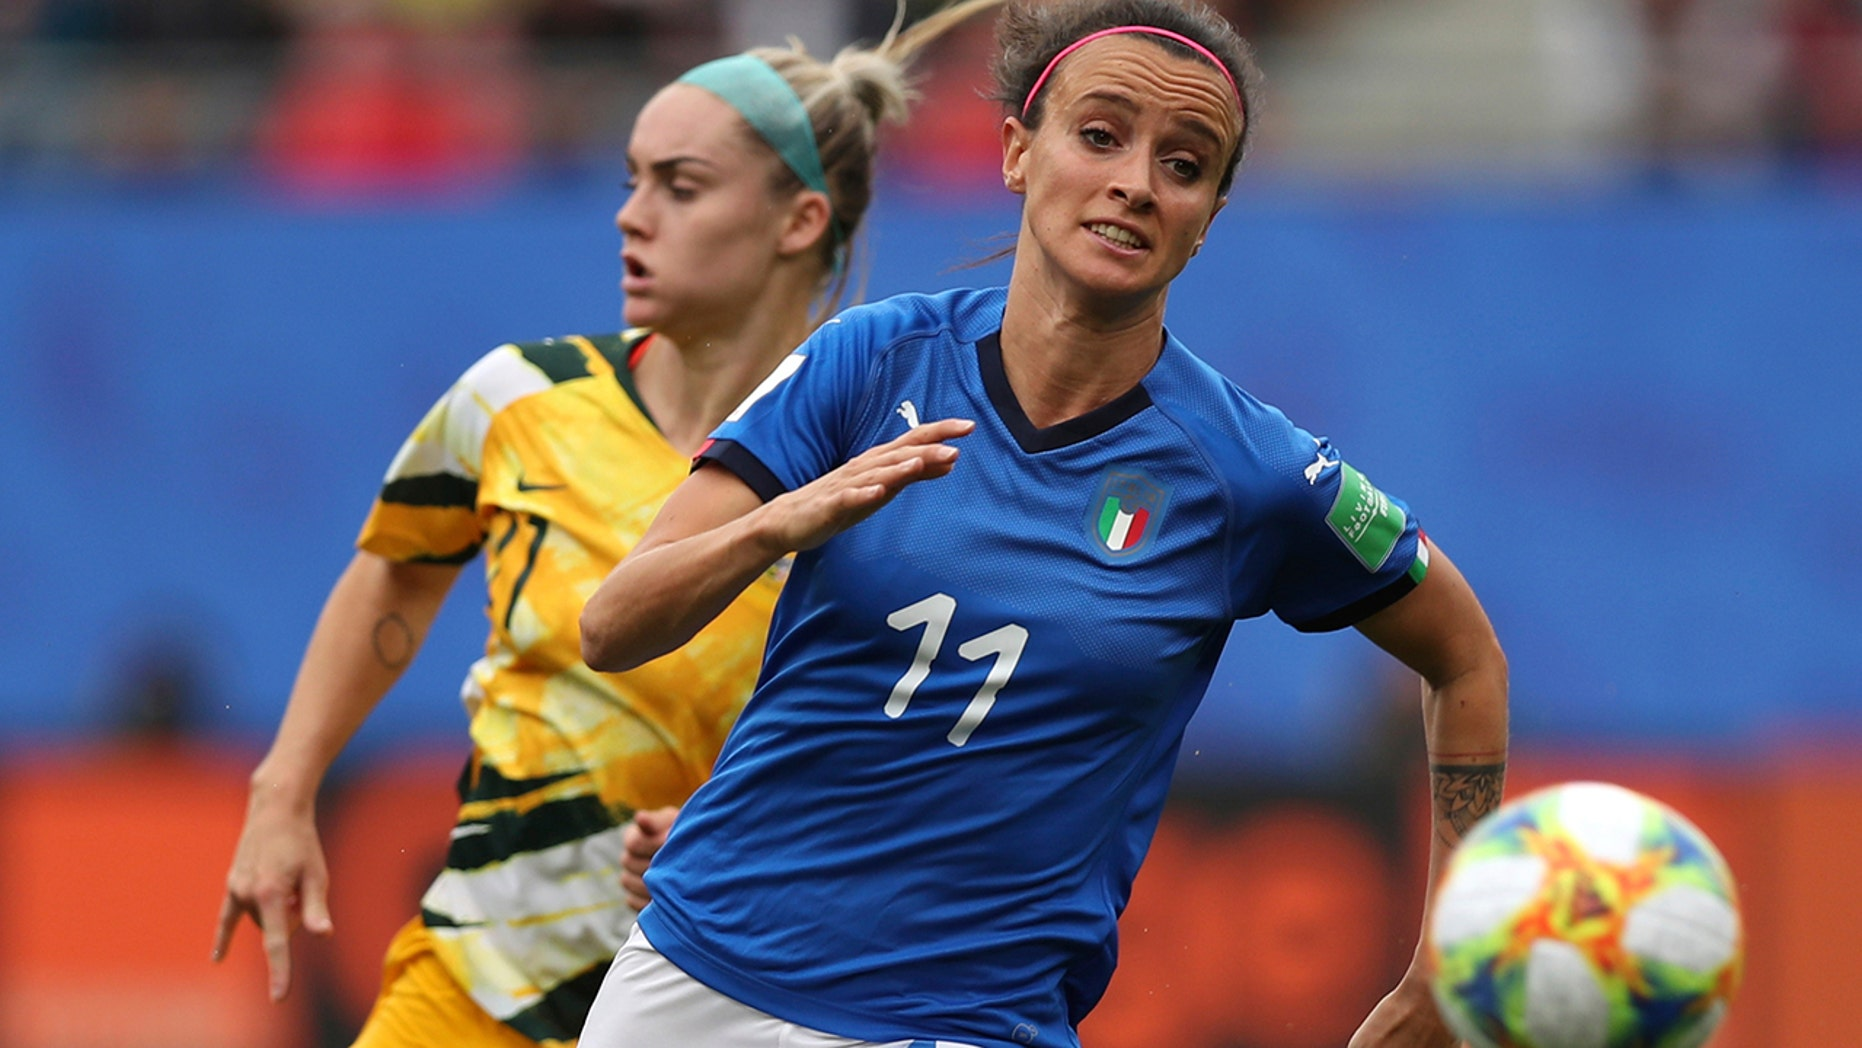 FILE - In this June 9, 2019 file photo, Australia's Ellie Carpenter, left, chases Italy's Barbara Bonansea during a Women's World Cup Group C soccer match between Australia and Italy at the Stade du Hainaut in Valenciennes, France. Italy won 2-0. Italy's surprise run to the quarterfinals of the Women's World Cup this year went a long way toward changing misconceptions about the female game in a country where the most popular sport is dominated by men. (AP Photo/Francisco Seco, file)